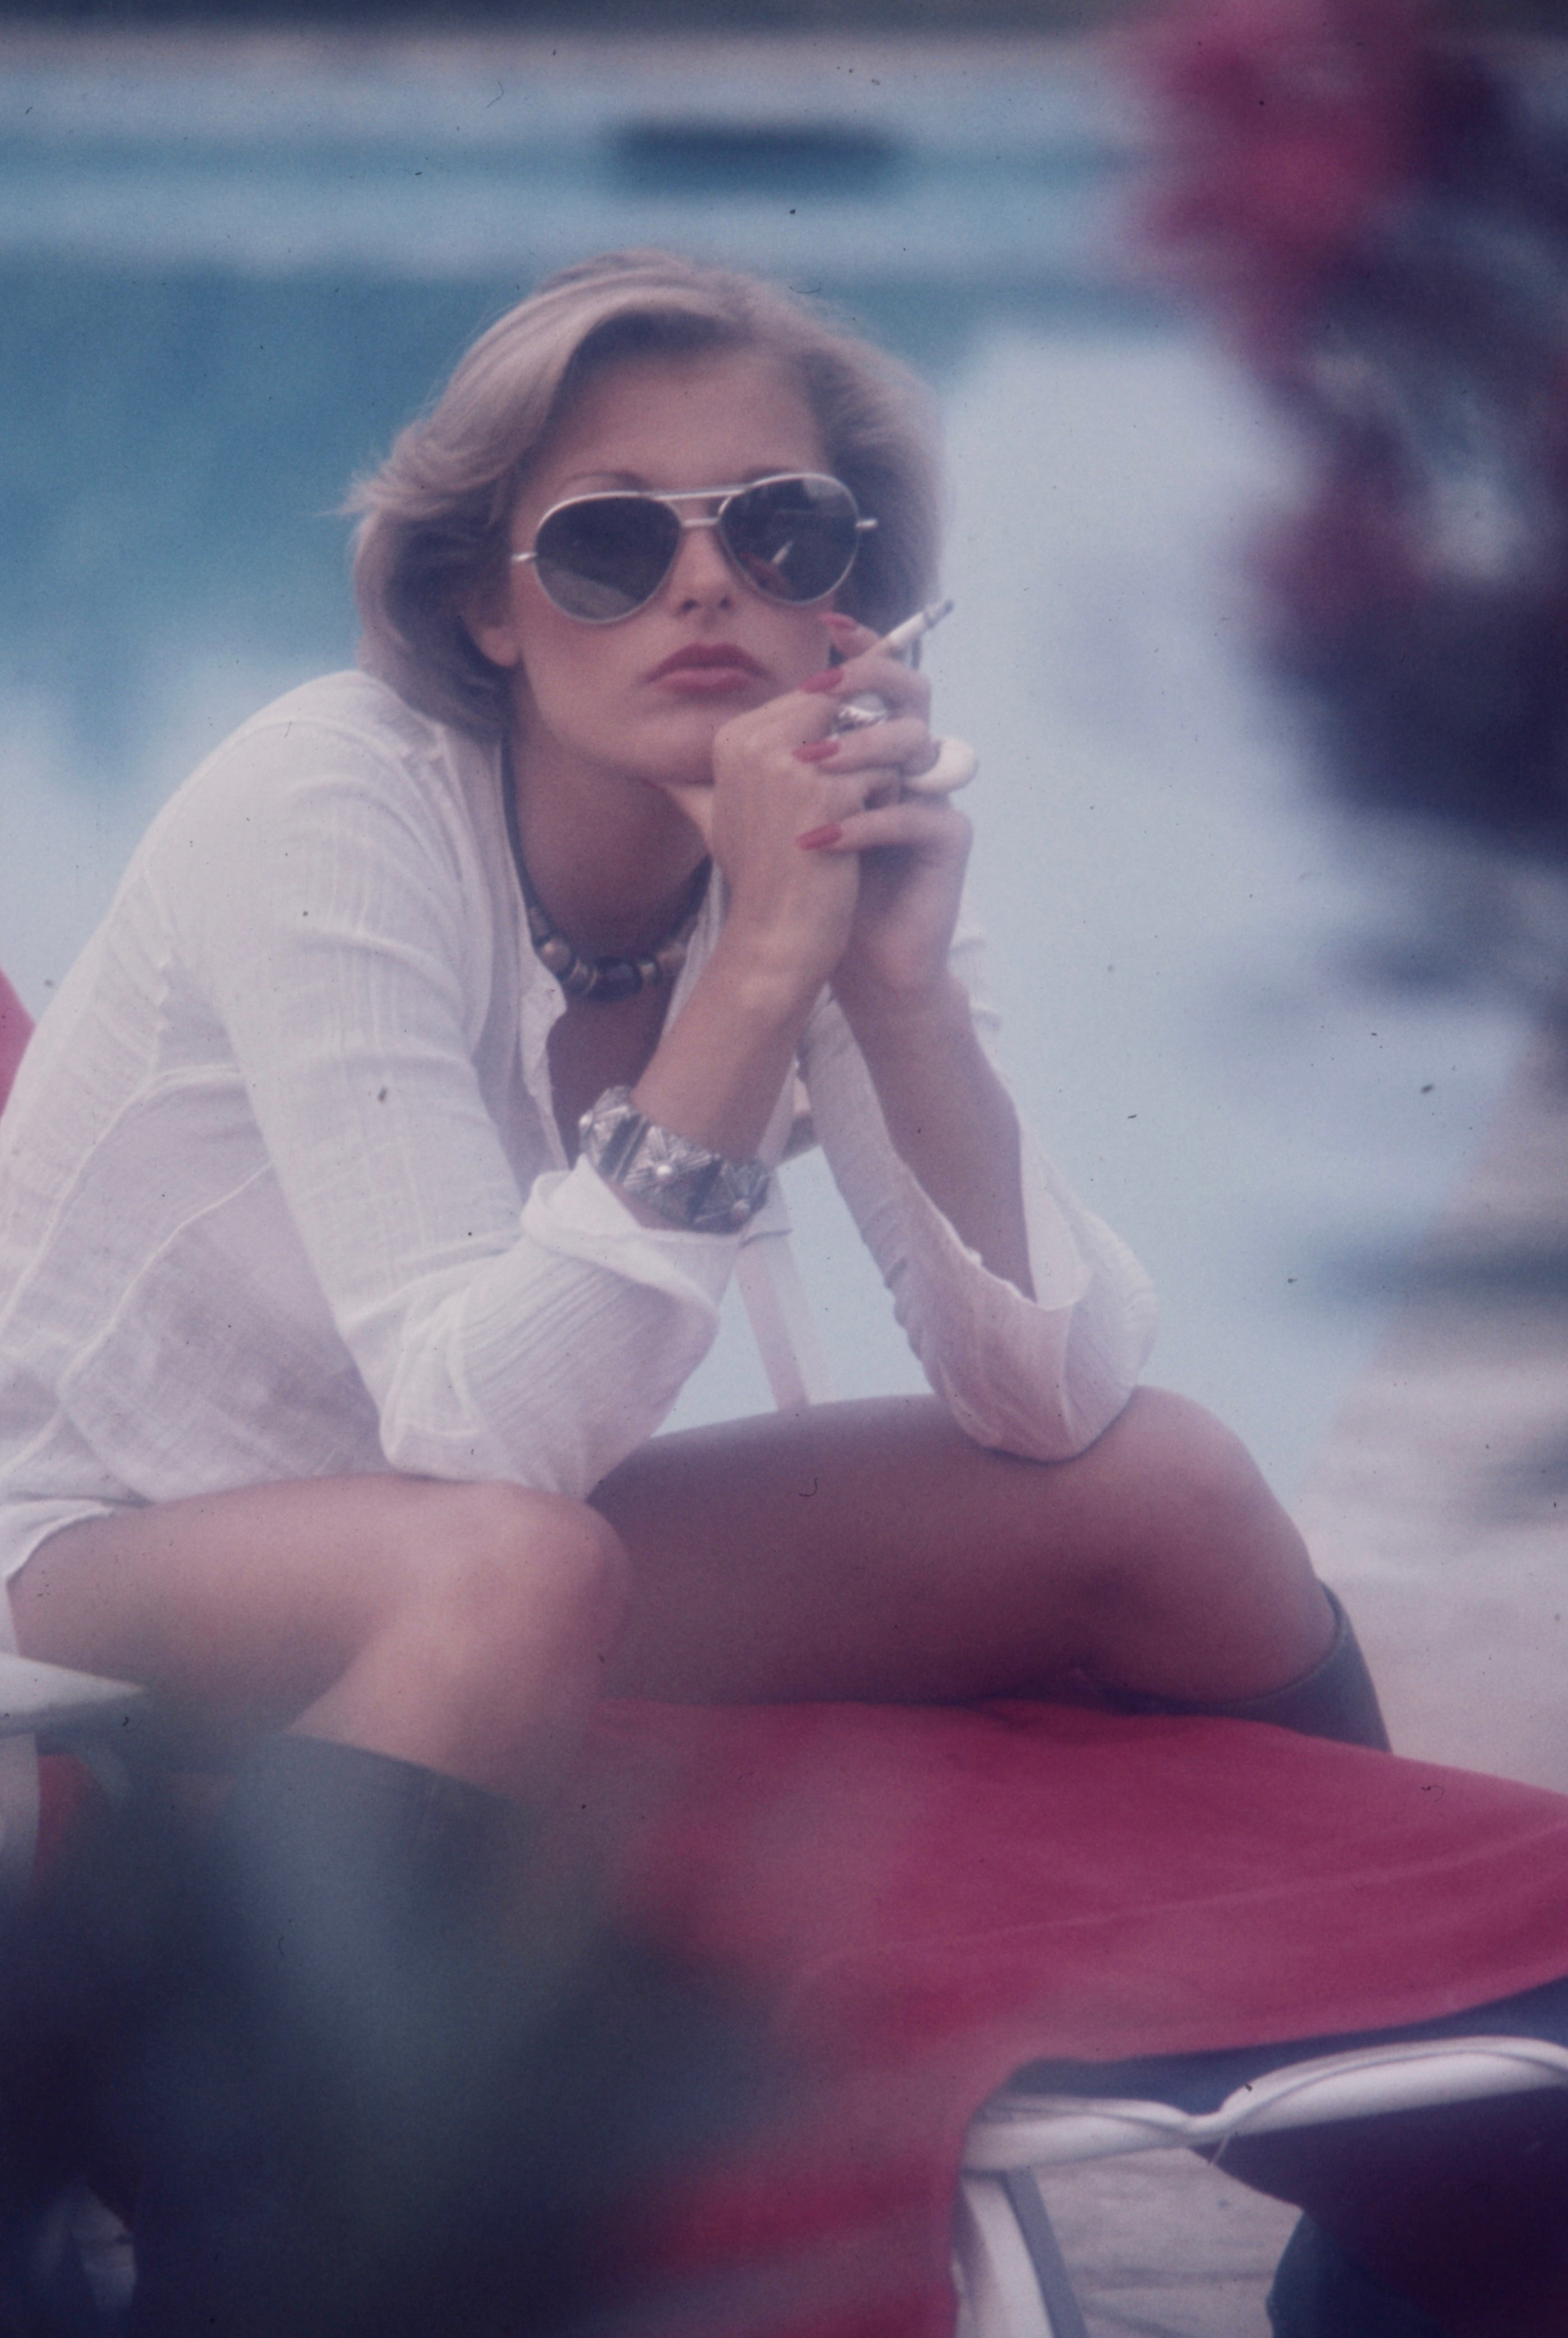 Jane Hargrave smoking a cigarette with sunglasses